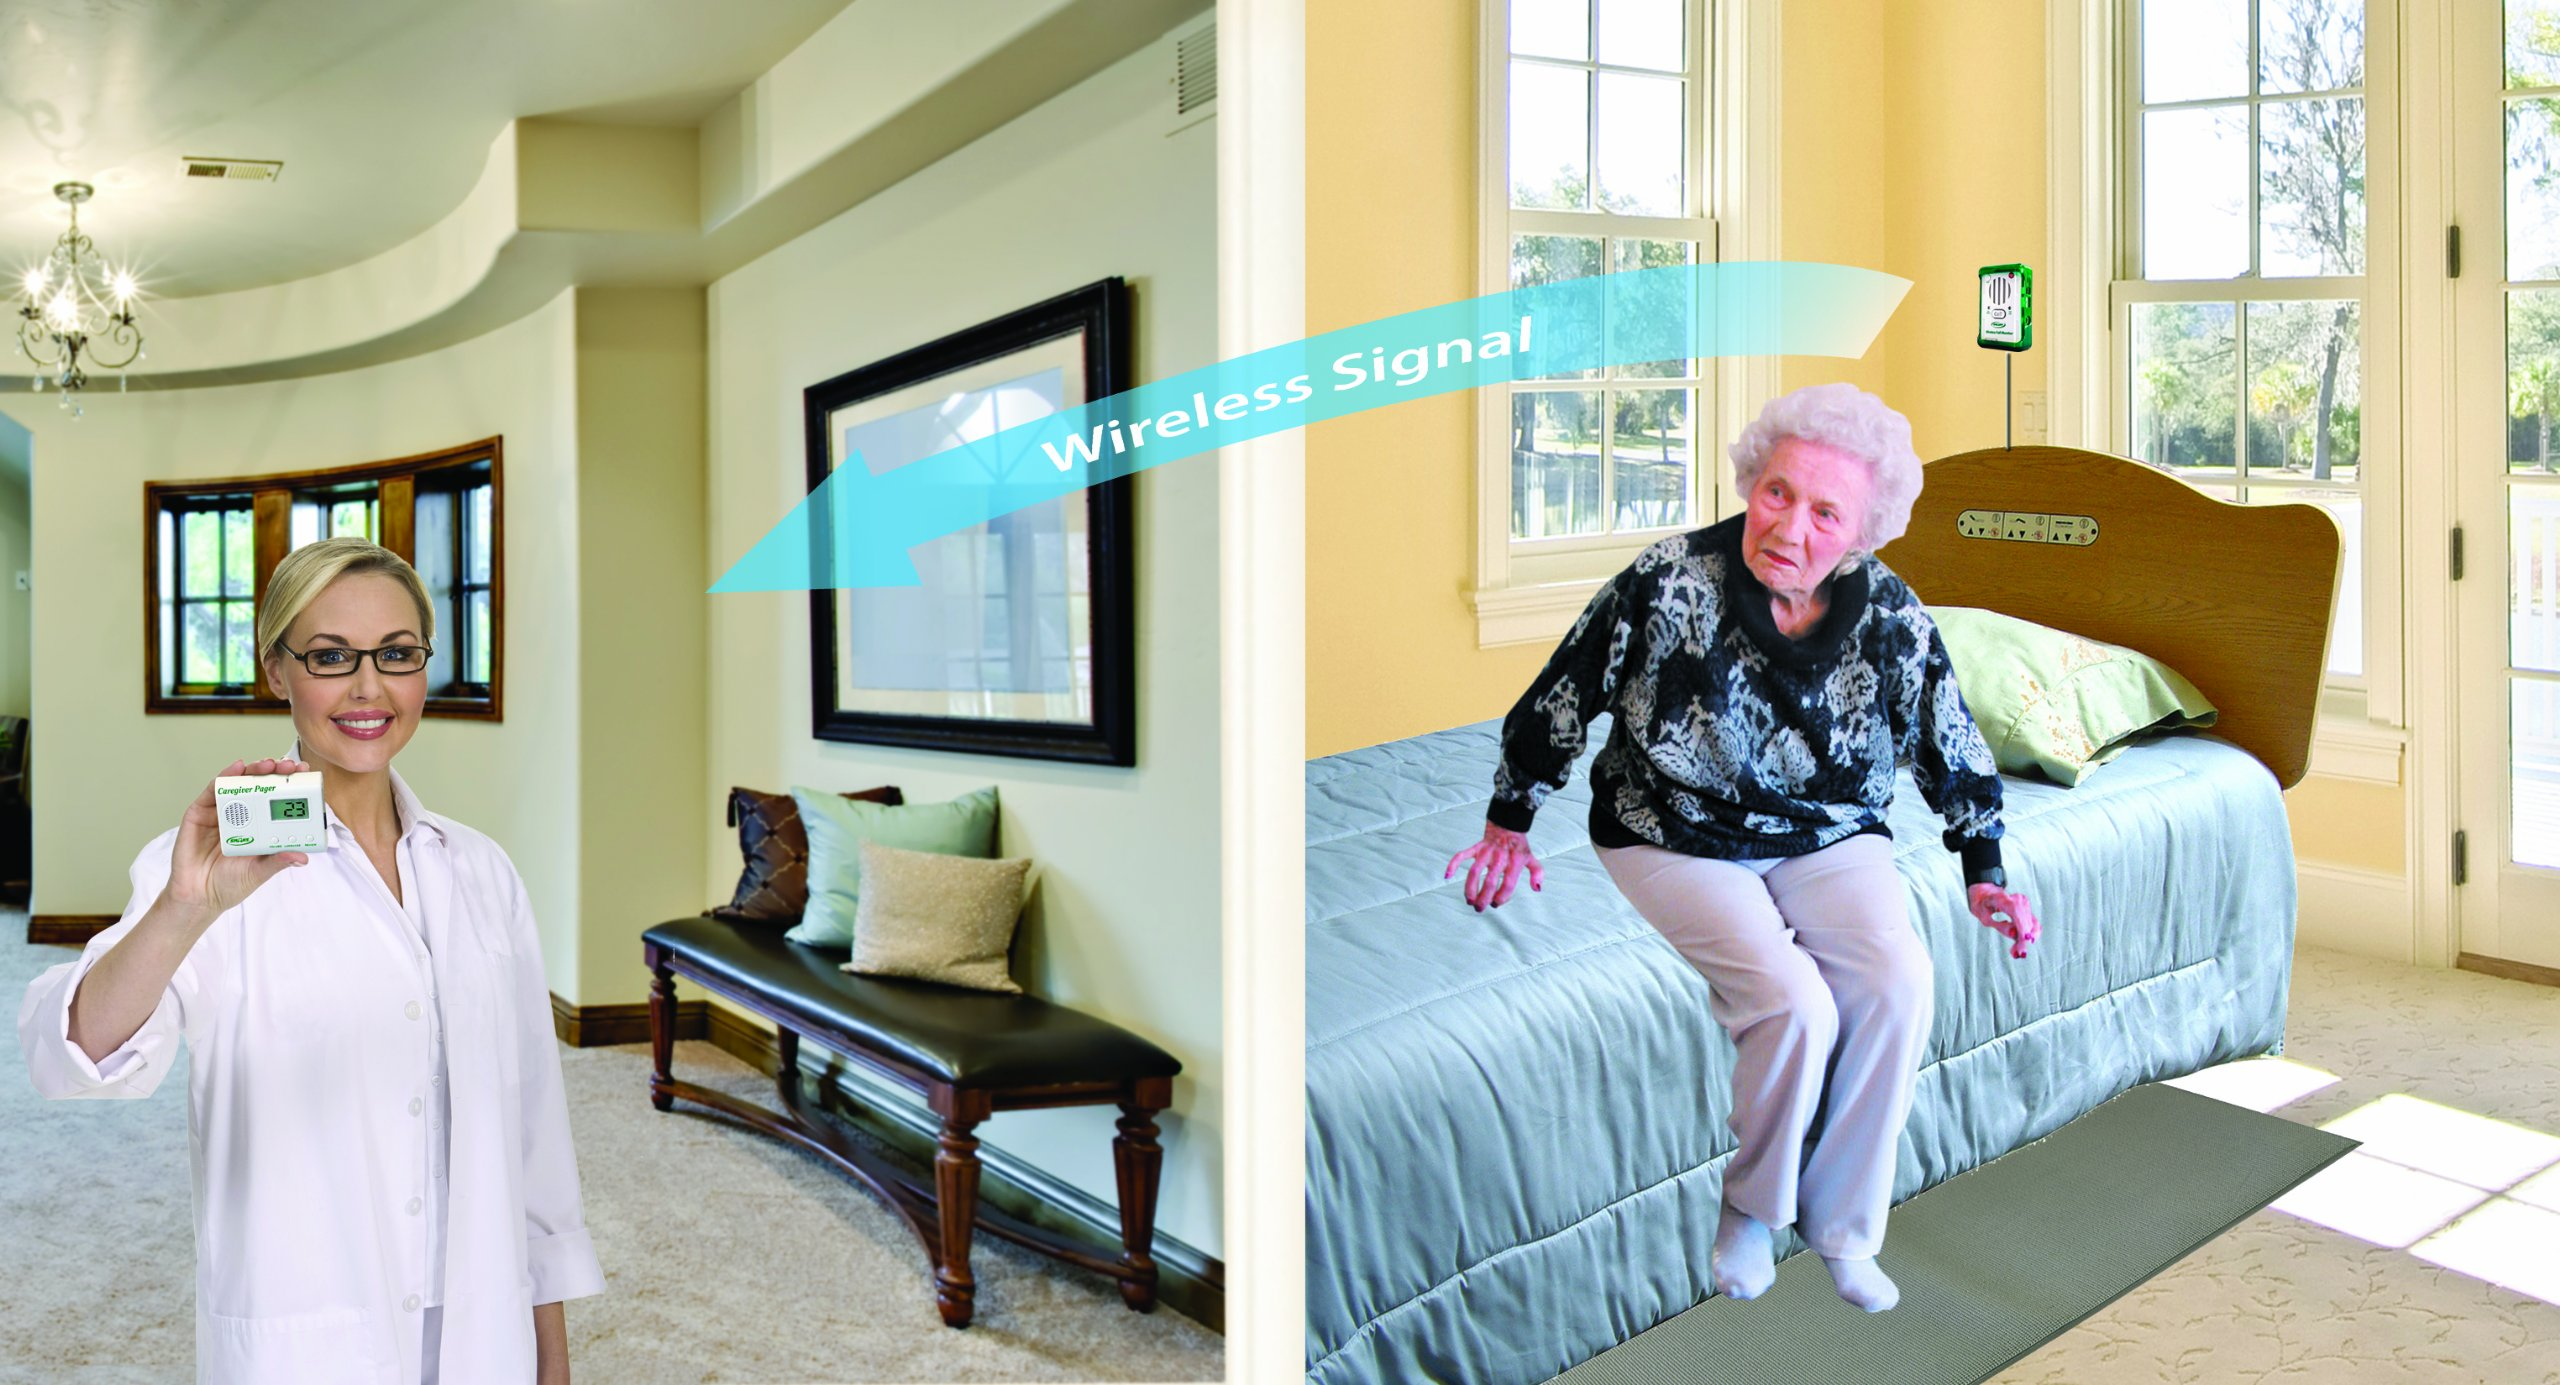 Caregiver Pager with Weight Sensing Floor Mat & Alarm - No Alarm in Resident's Room!